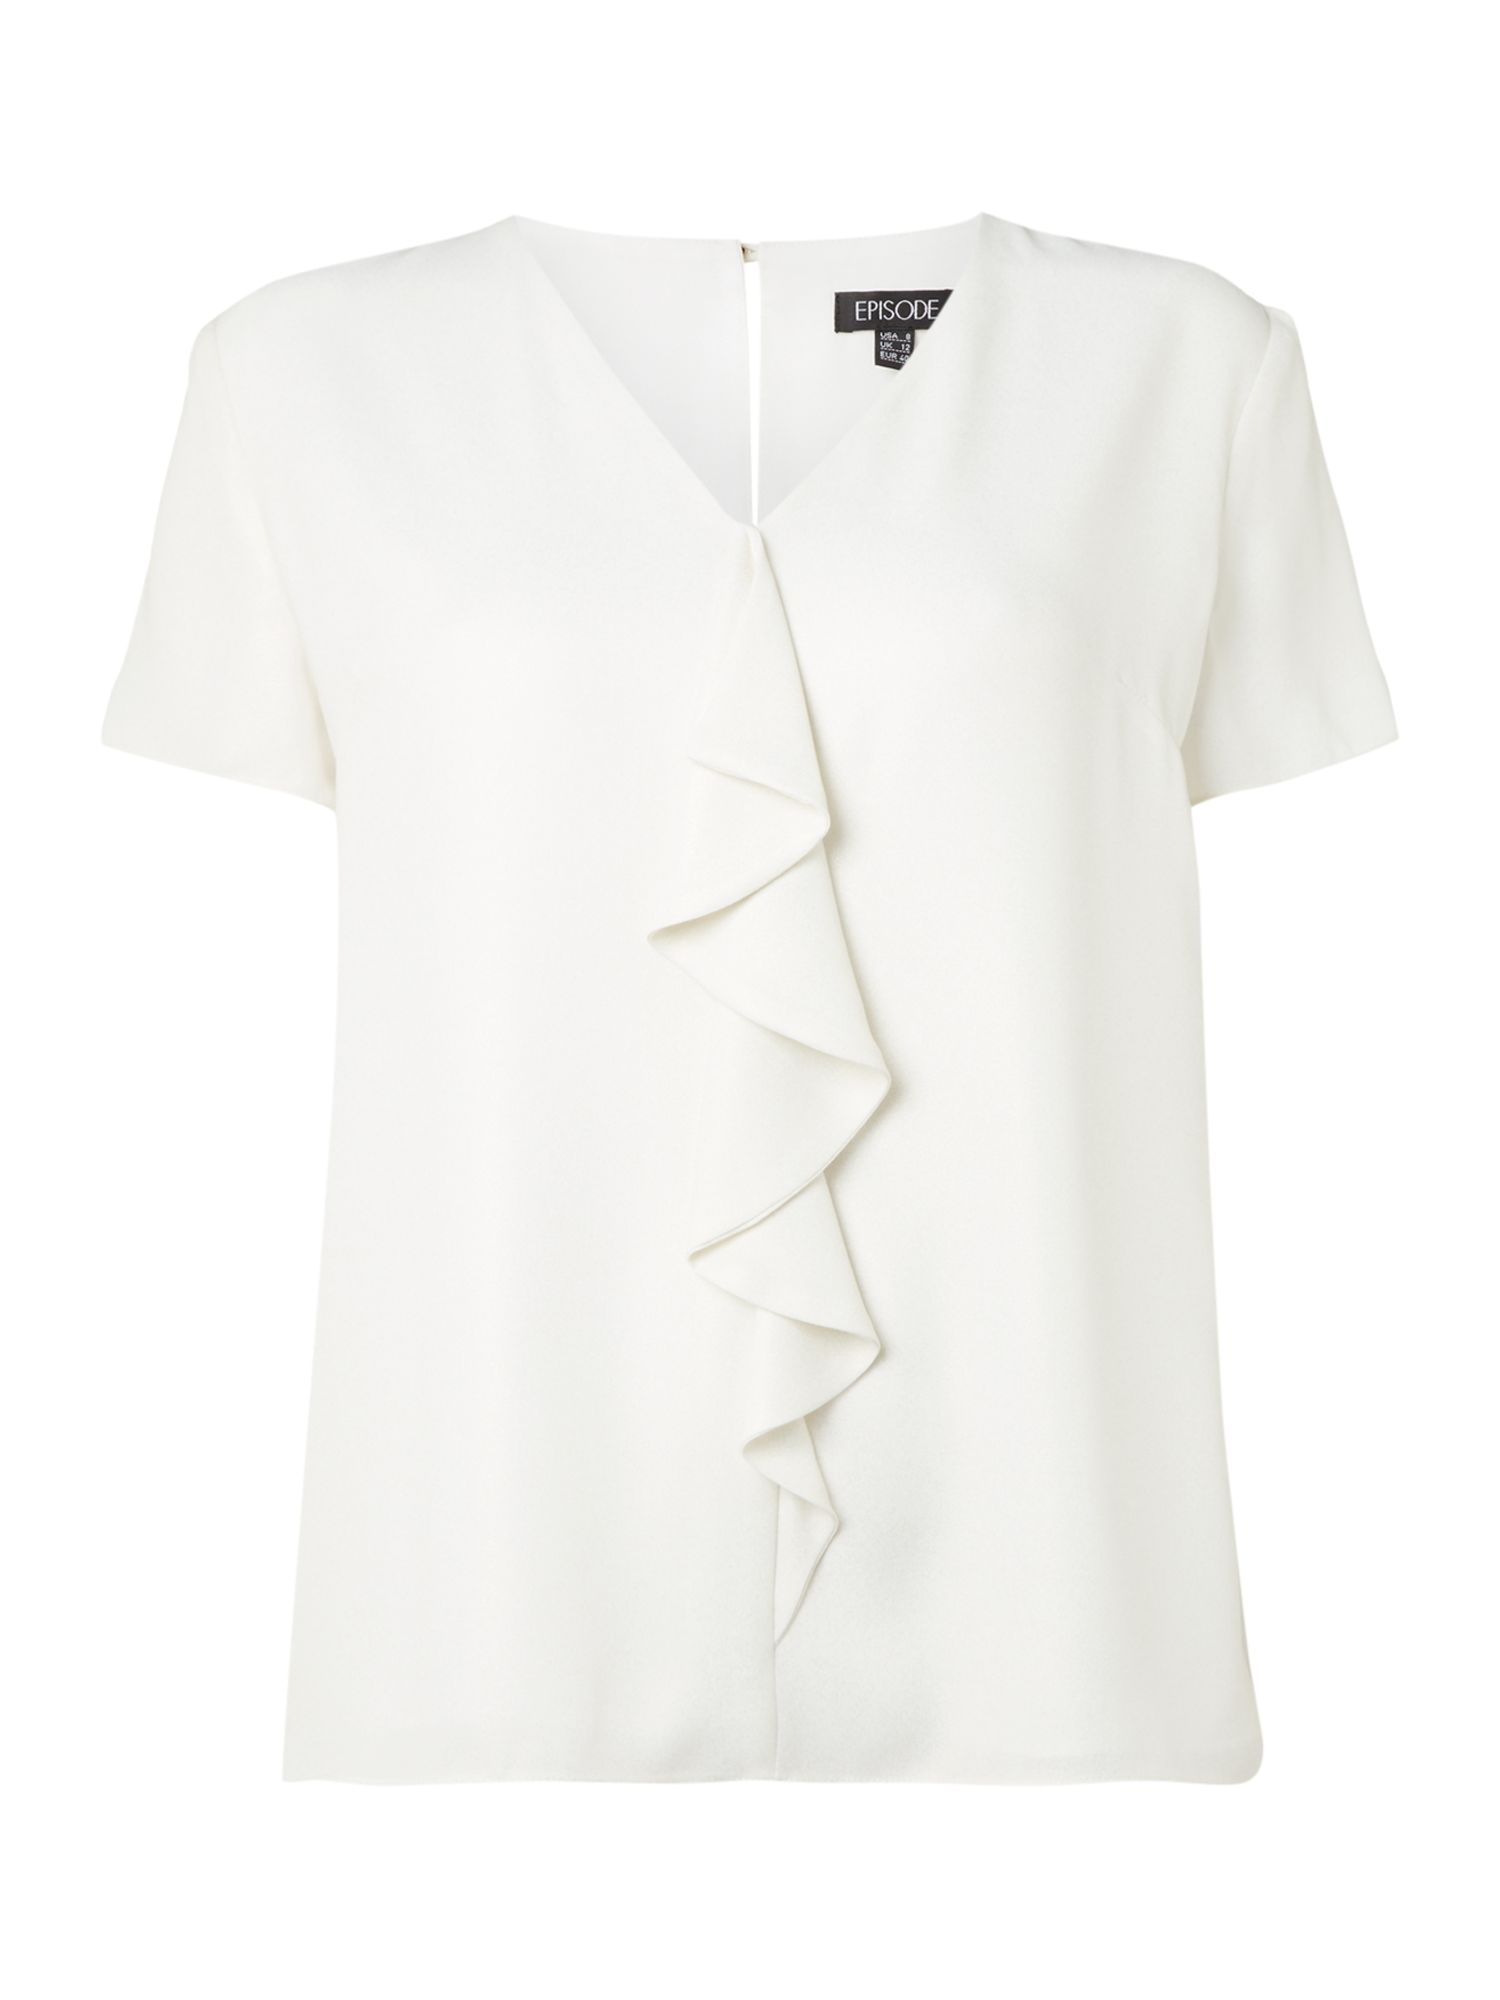 Episode Episode Ruffle short sleeved top, White